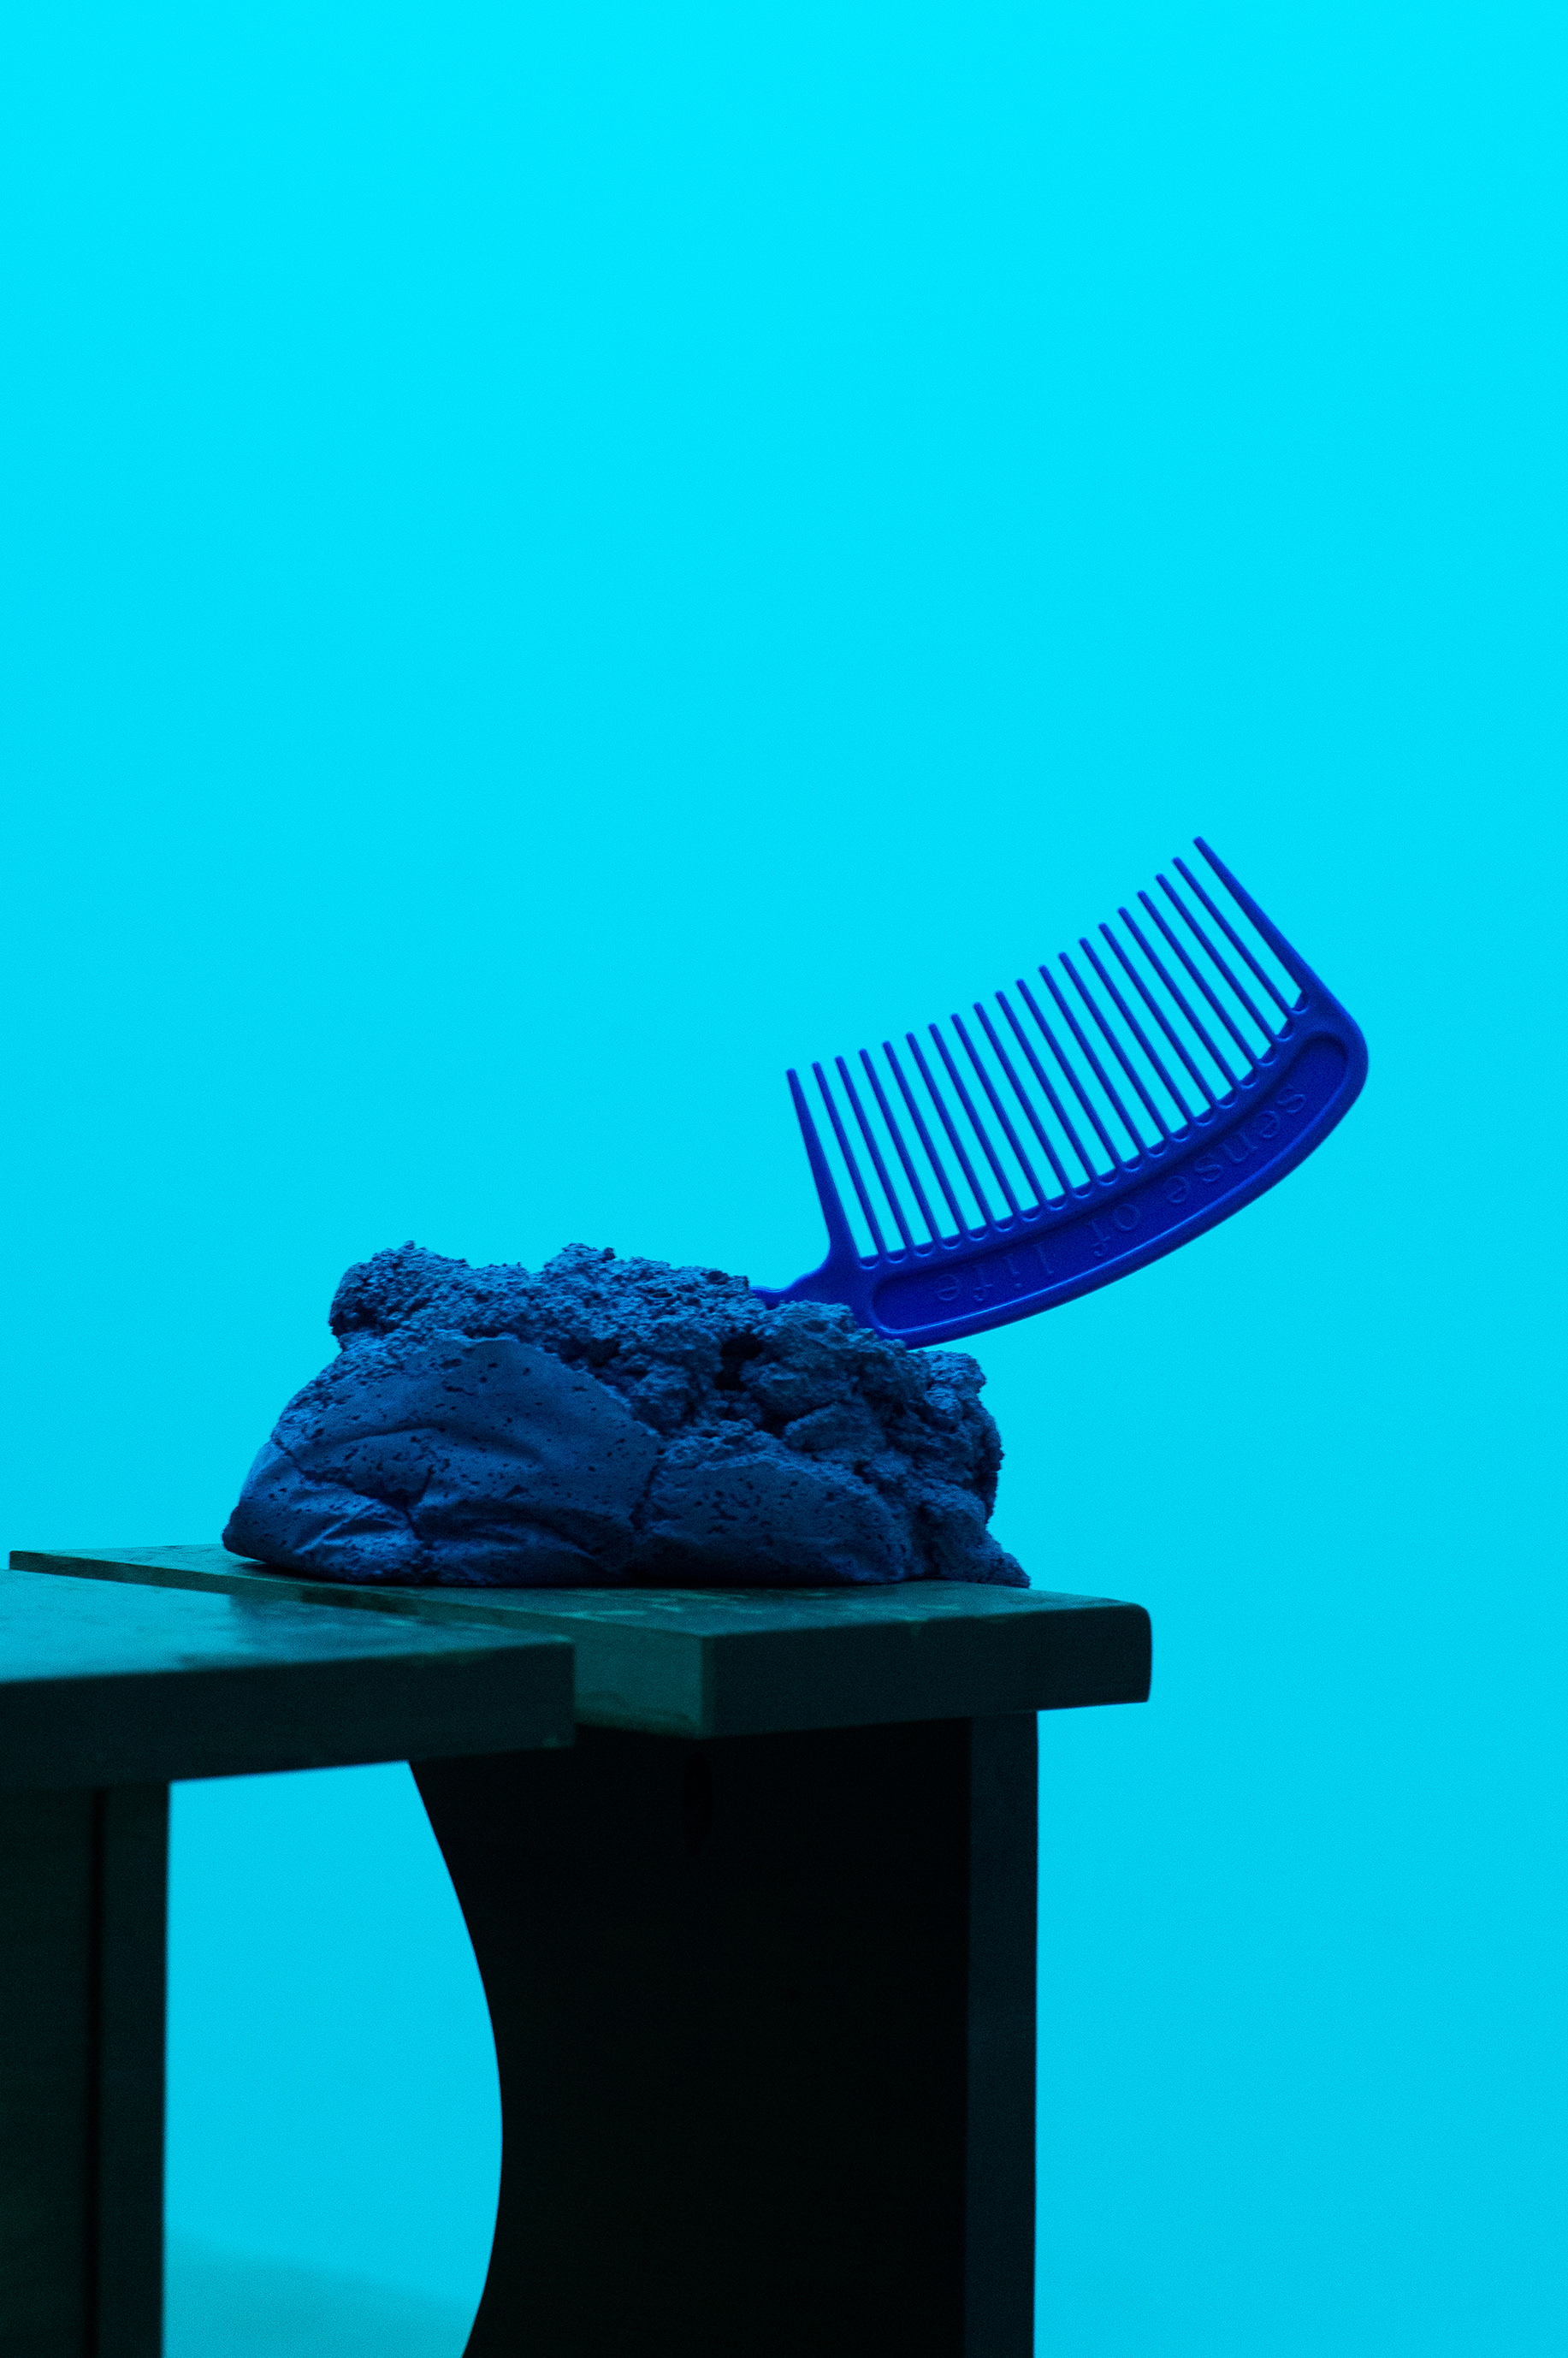 Comb and Side table, 2019